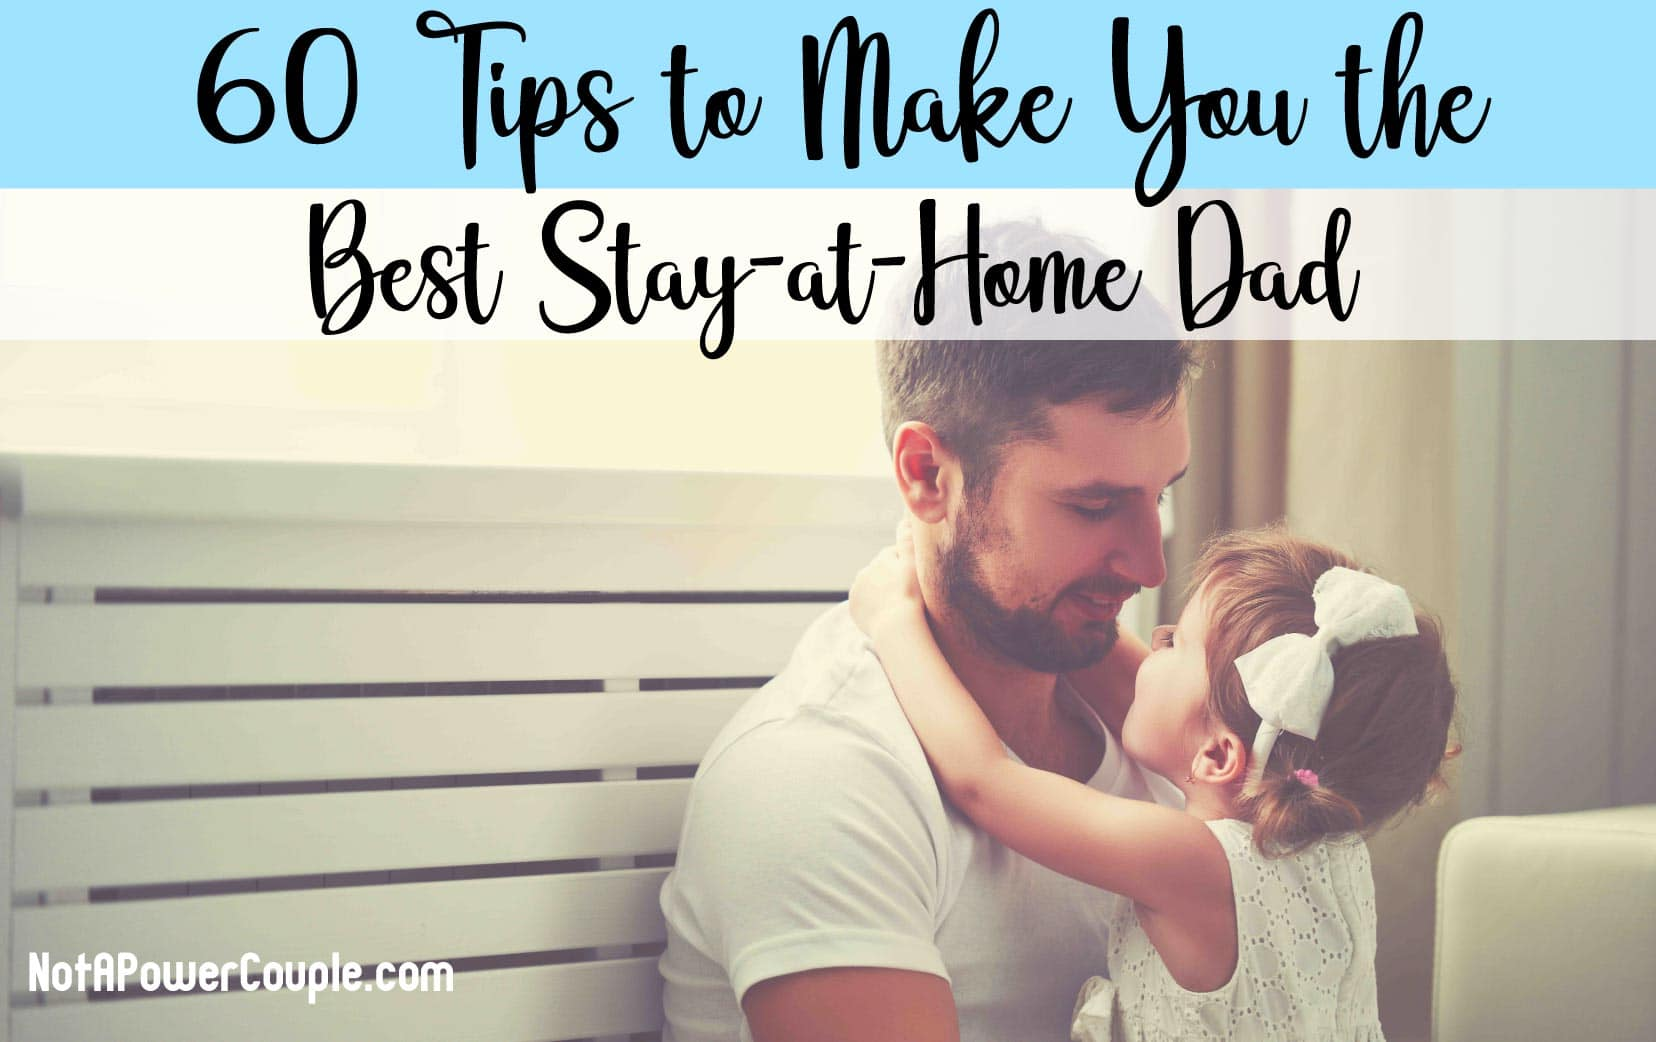 60 Tips to Make You the Best Stay-at-Home Dad